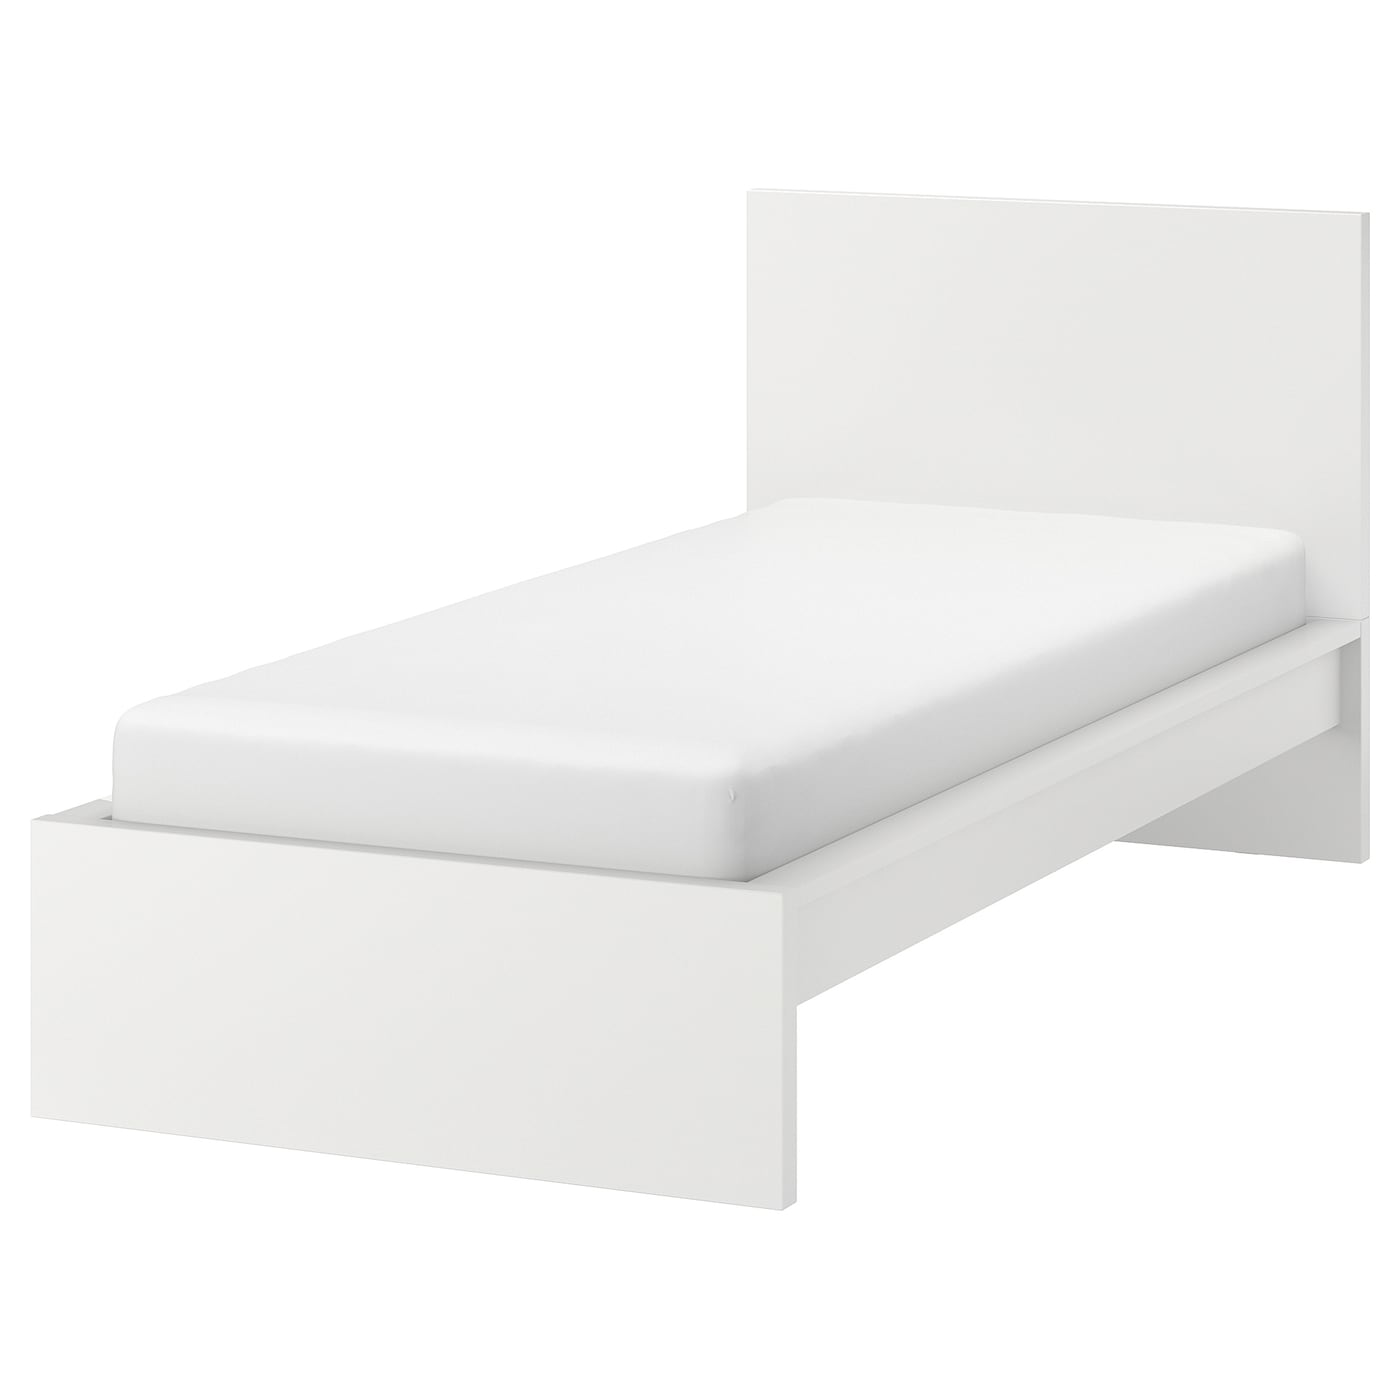 Picture of: Malm Bed Frame High White Ikea